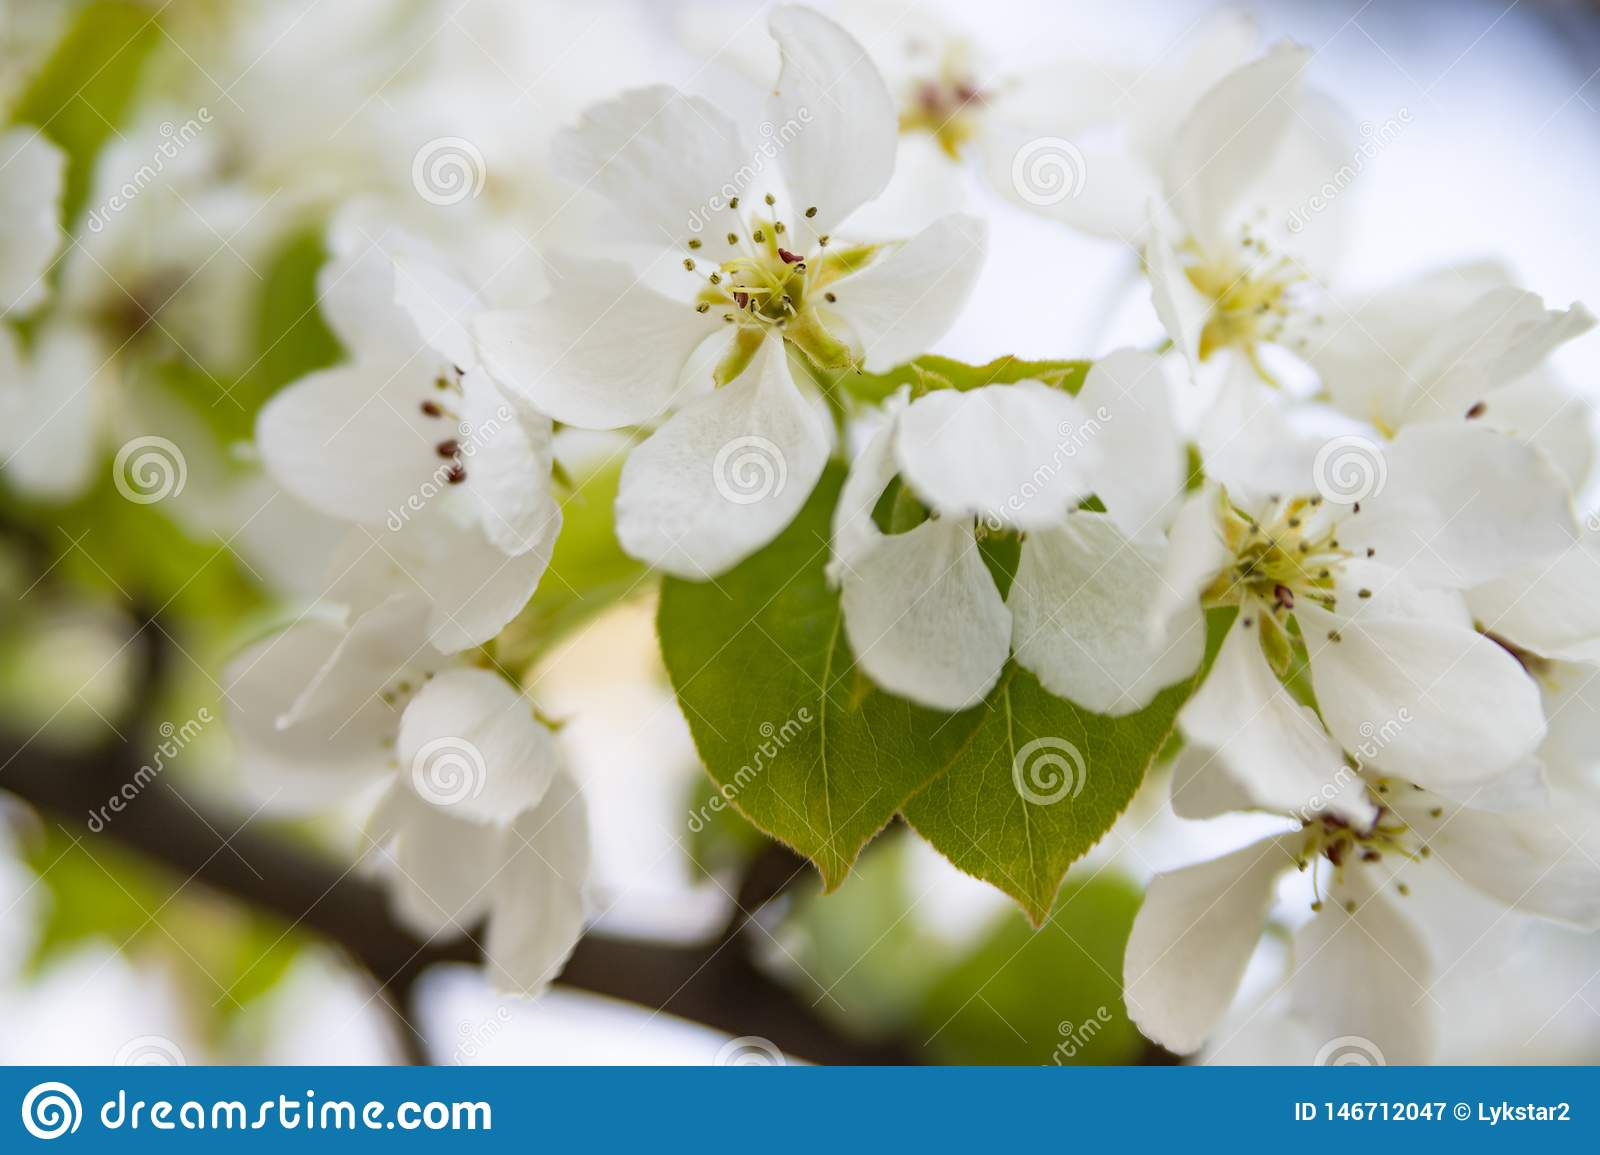 White flowers of apple tree close-up on a blurred background